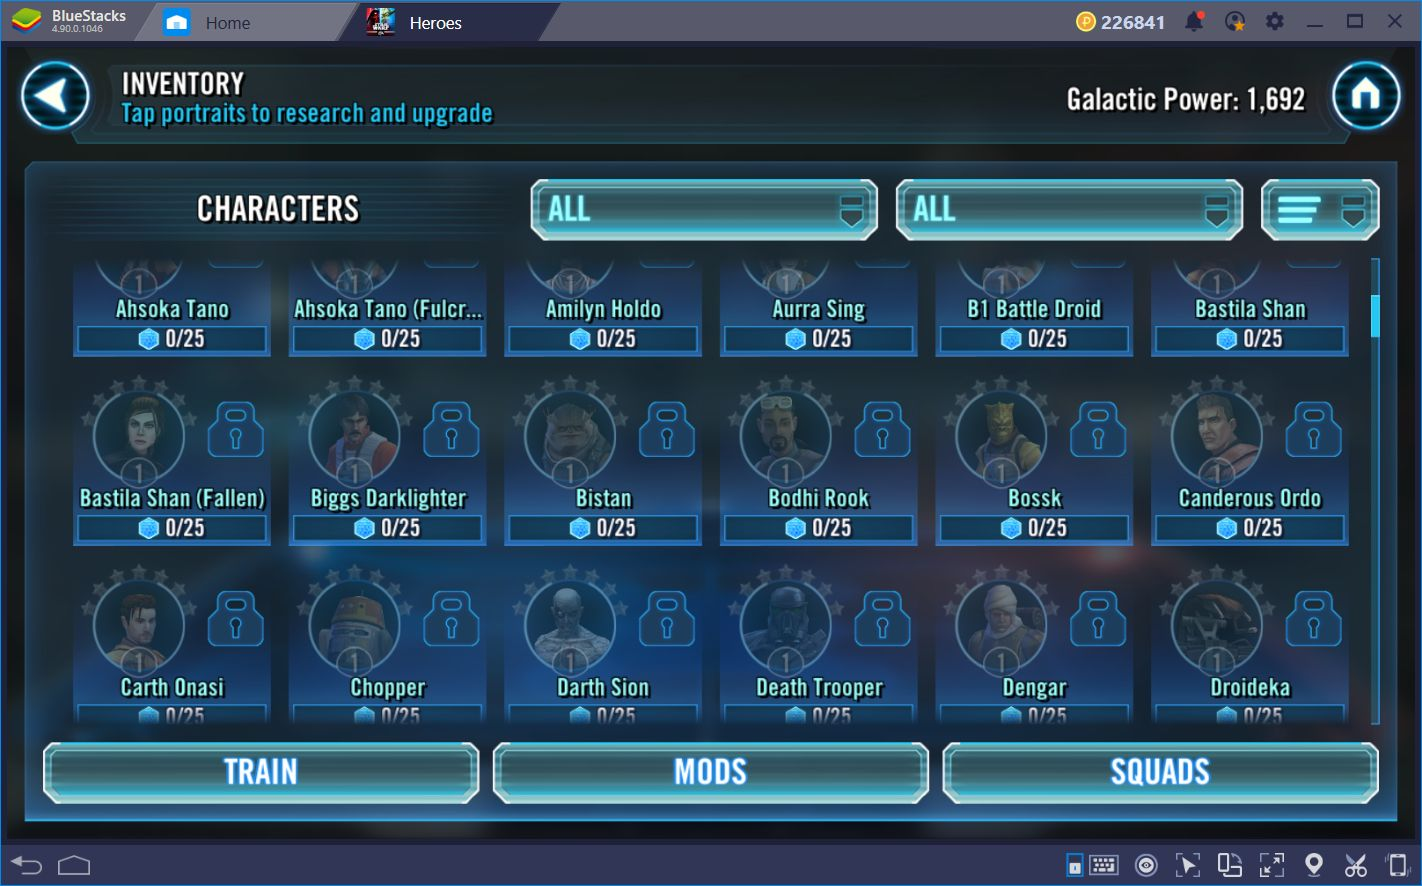 The 5 Best Leaders in Star Wars: Galaxy of Heroes